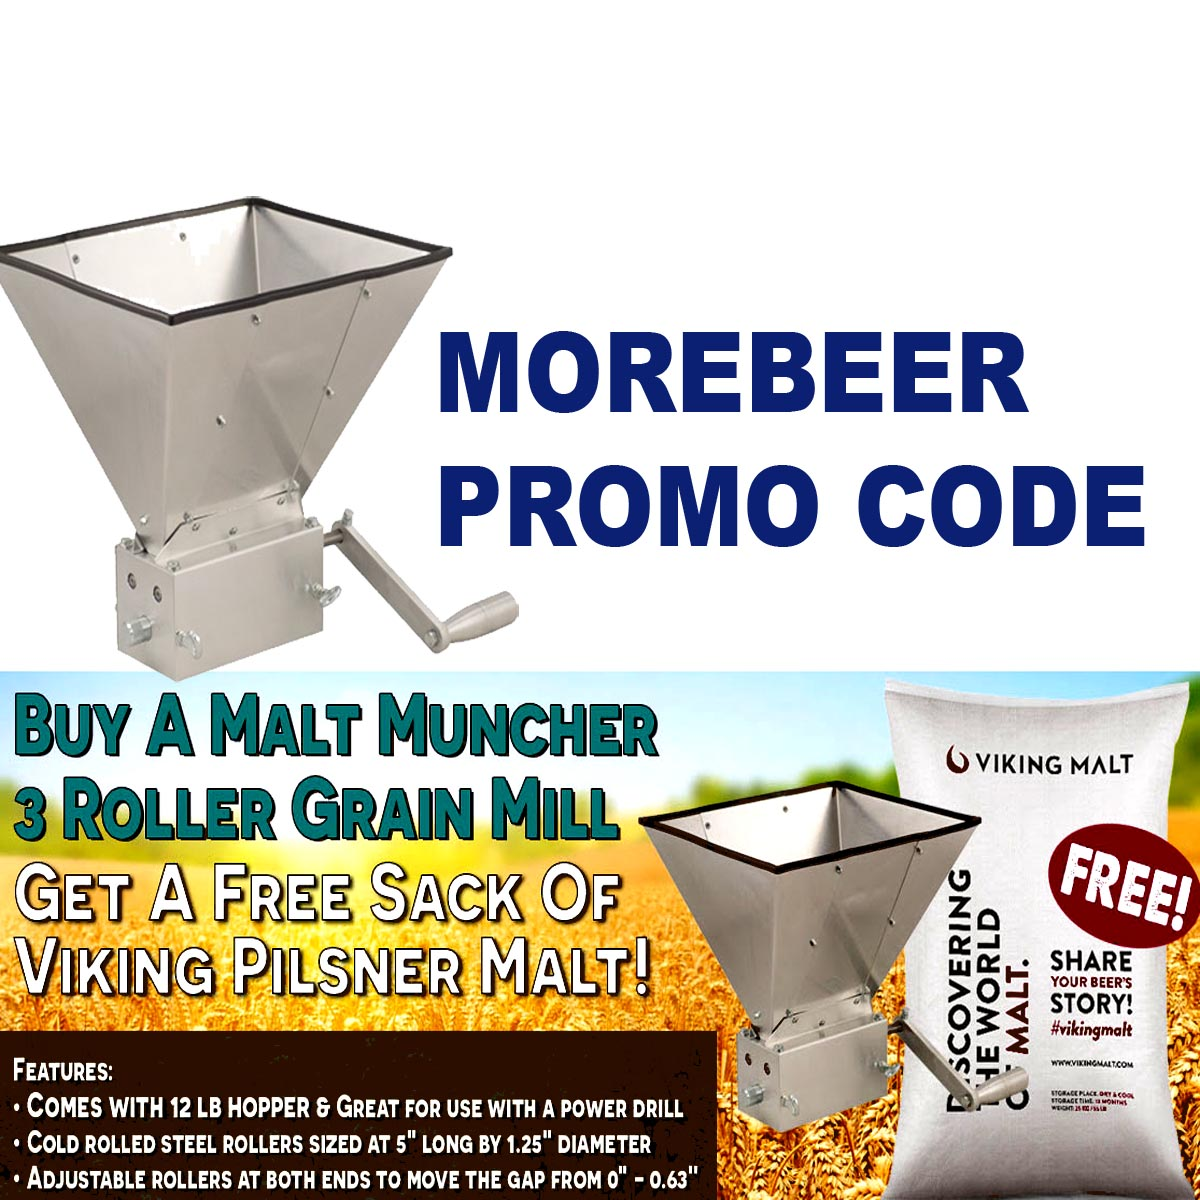 MoreBeer Get a FREE Sack Of Viking Pilsner Malt With the Purchase Of Malt Muncher Mill Using This MoreBeer.com Promo Code Coupon Code